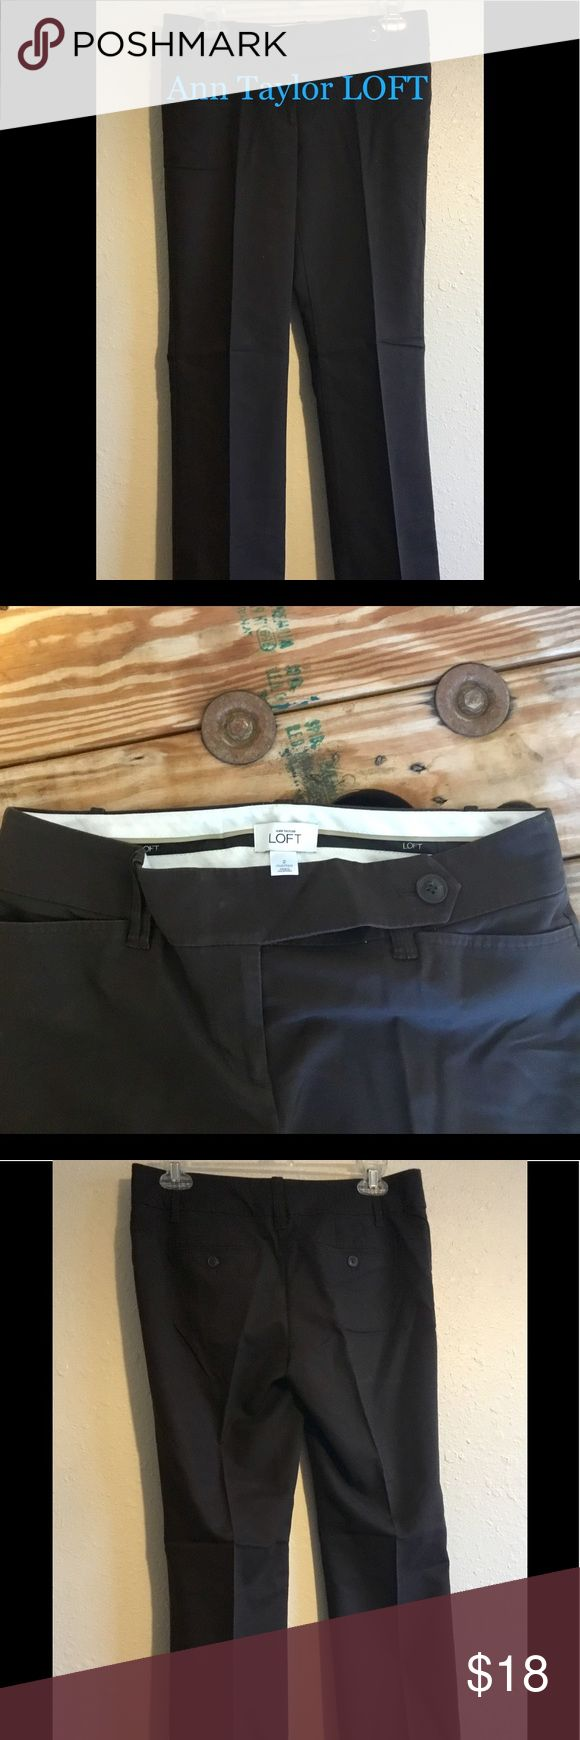 Anne Taylor loft Work or Dress Pants SZ 2 Ann Taylor LOFT Dress or work pants size 2 in Good condition! Please feel free to check out my other items and I offer bundle pricing! #Discount #Bundle #Cheap #Gift #Deal #Gift #Kotas Will offer free card and wrapping, if sent as gift! Please include occasion and special message. LOFT Pants